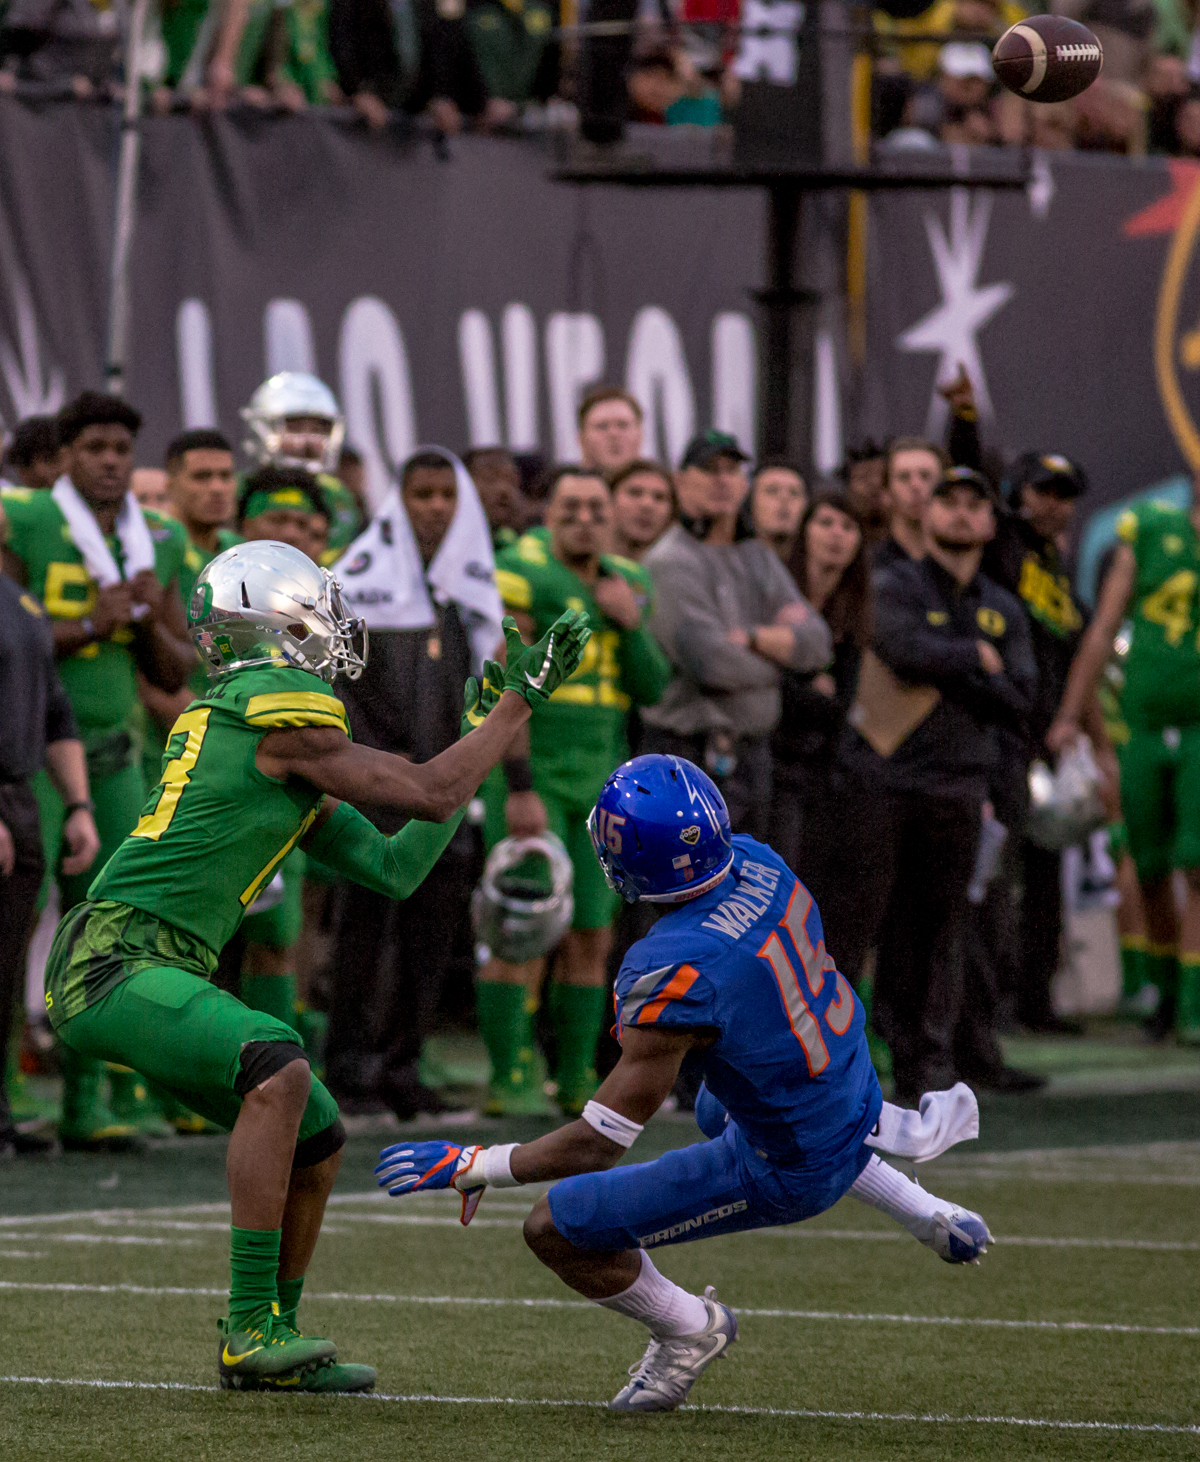 Oregon wide receiver Dillon Mitchell (#13) watches the ball. The Boise State Broncos defeated the Oregon Ducks 38 to 28 in the 2017 Las Vegas Bowl at Sam Boyd Stadium in Las Vegas, Nevada on Saturday December 17, 2017. The Las Vegas Bowl served as the first test for Oregon's new Head Coach Mario Cristobal following the loss of former Head Coach Willie Taggart to Florida State University earlier this month. Photo by Ben Lonergan, Oregon News Lab